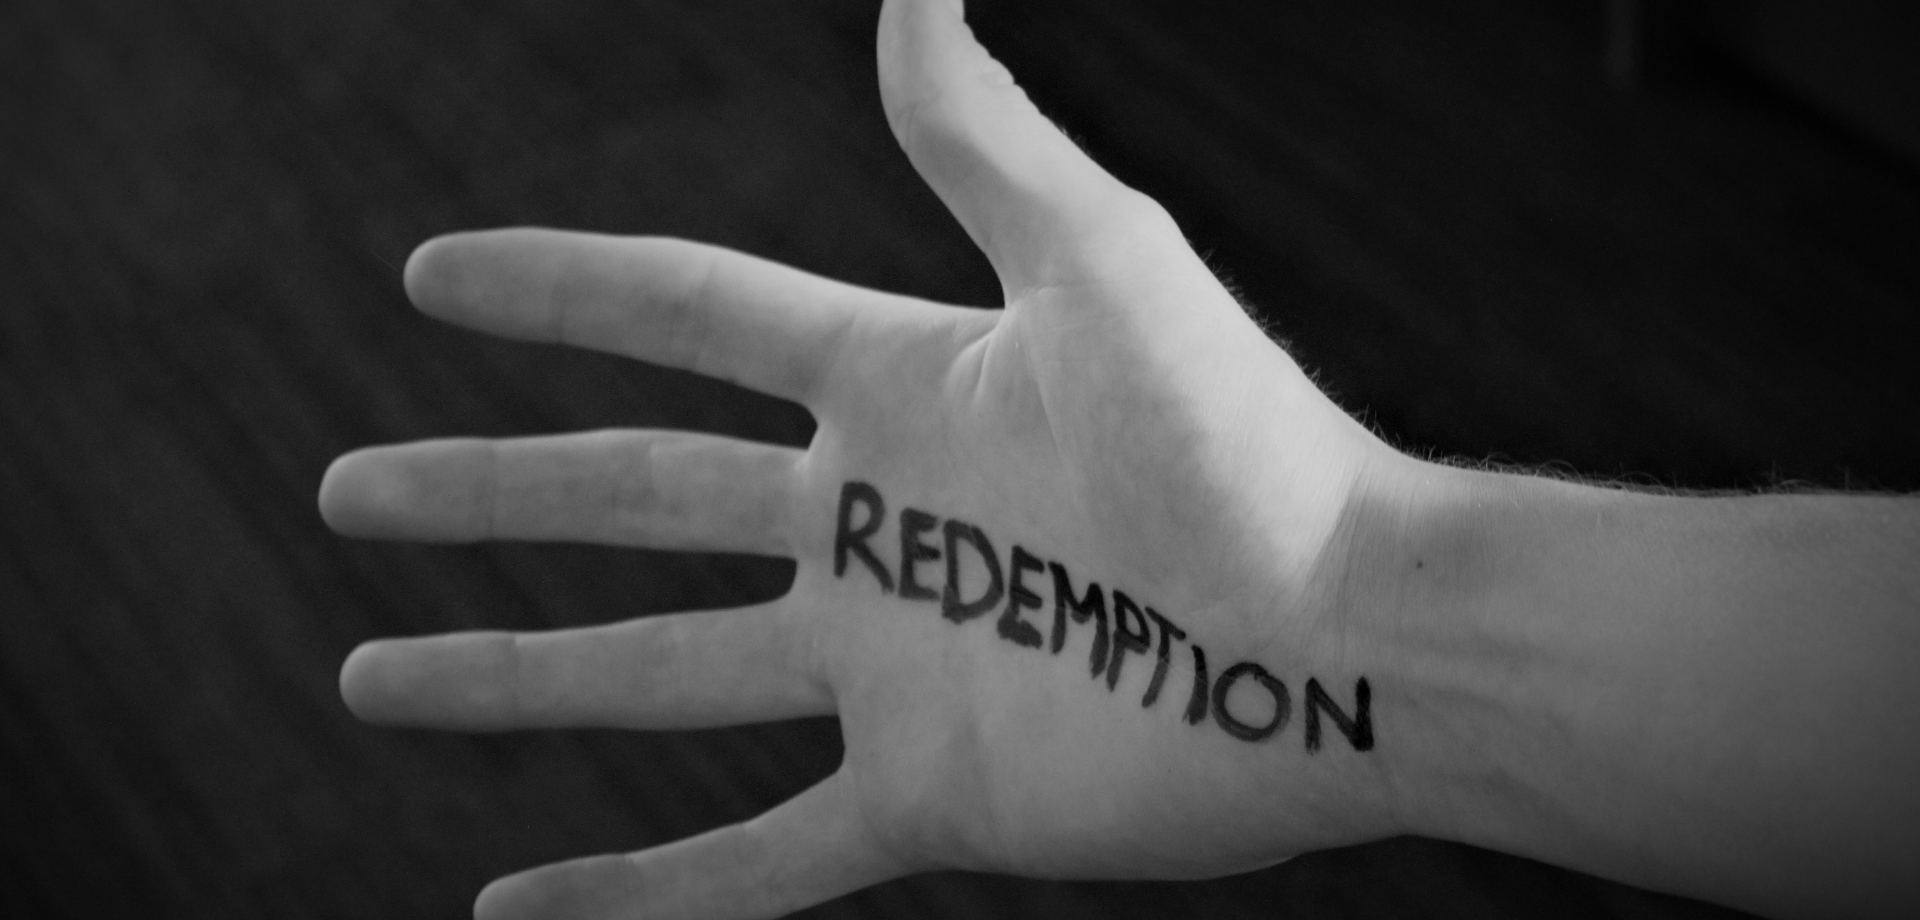 Celebrate the story of redemption this Easter at